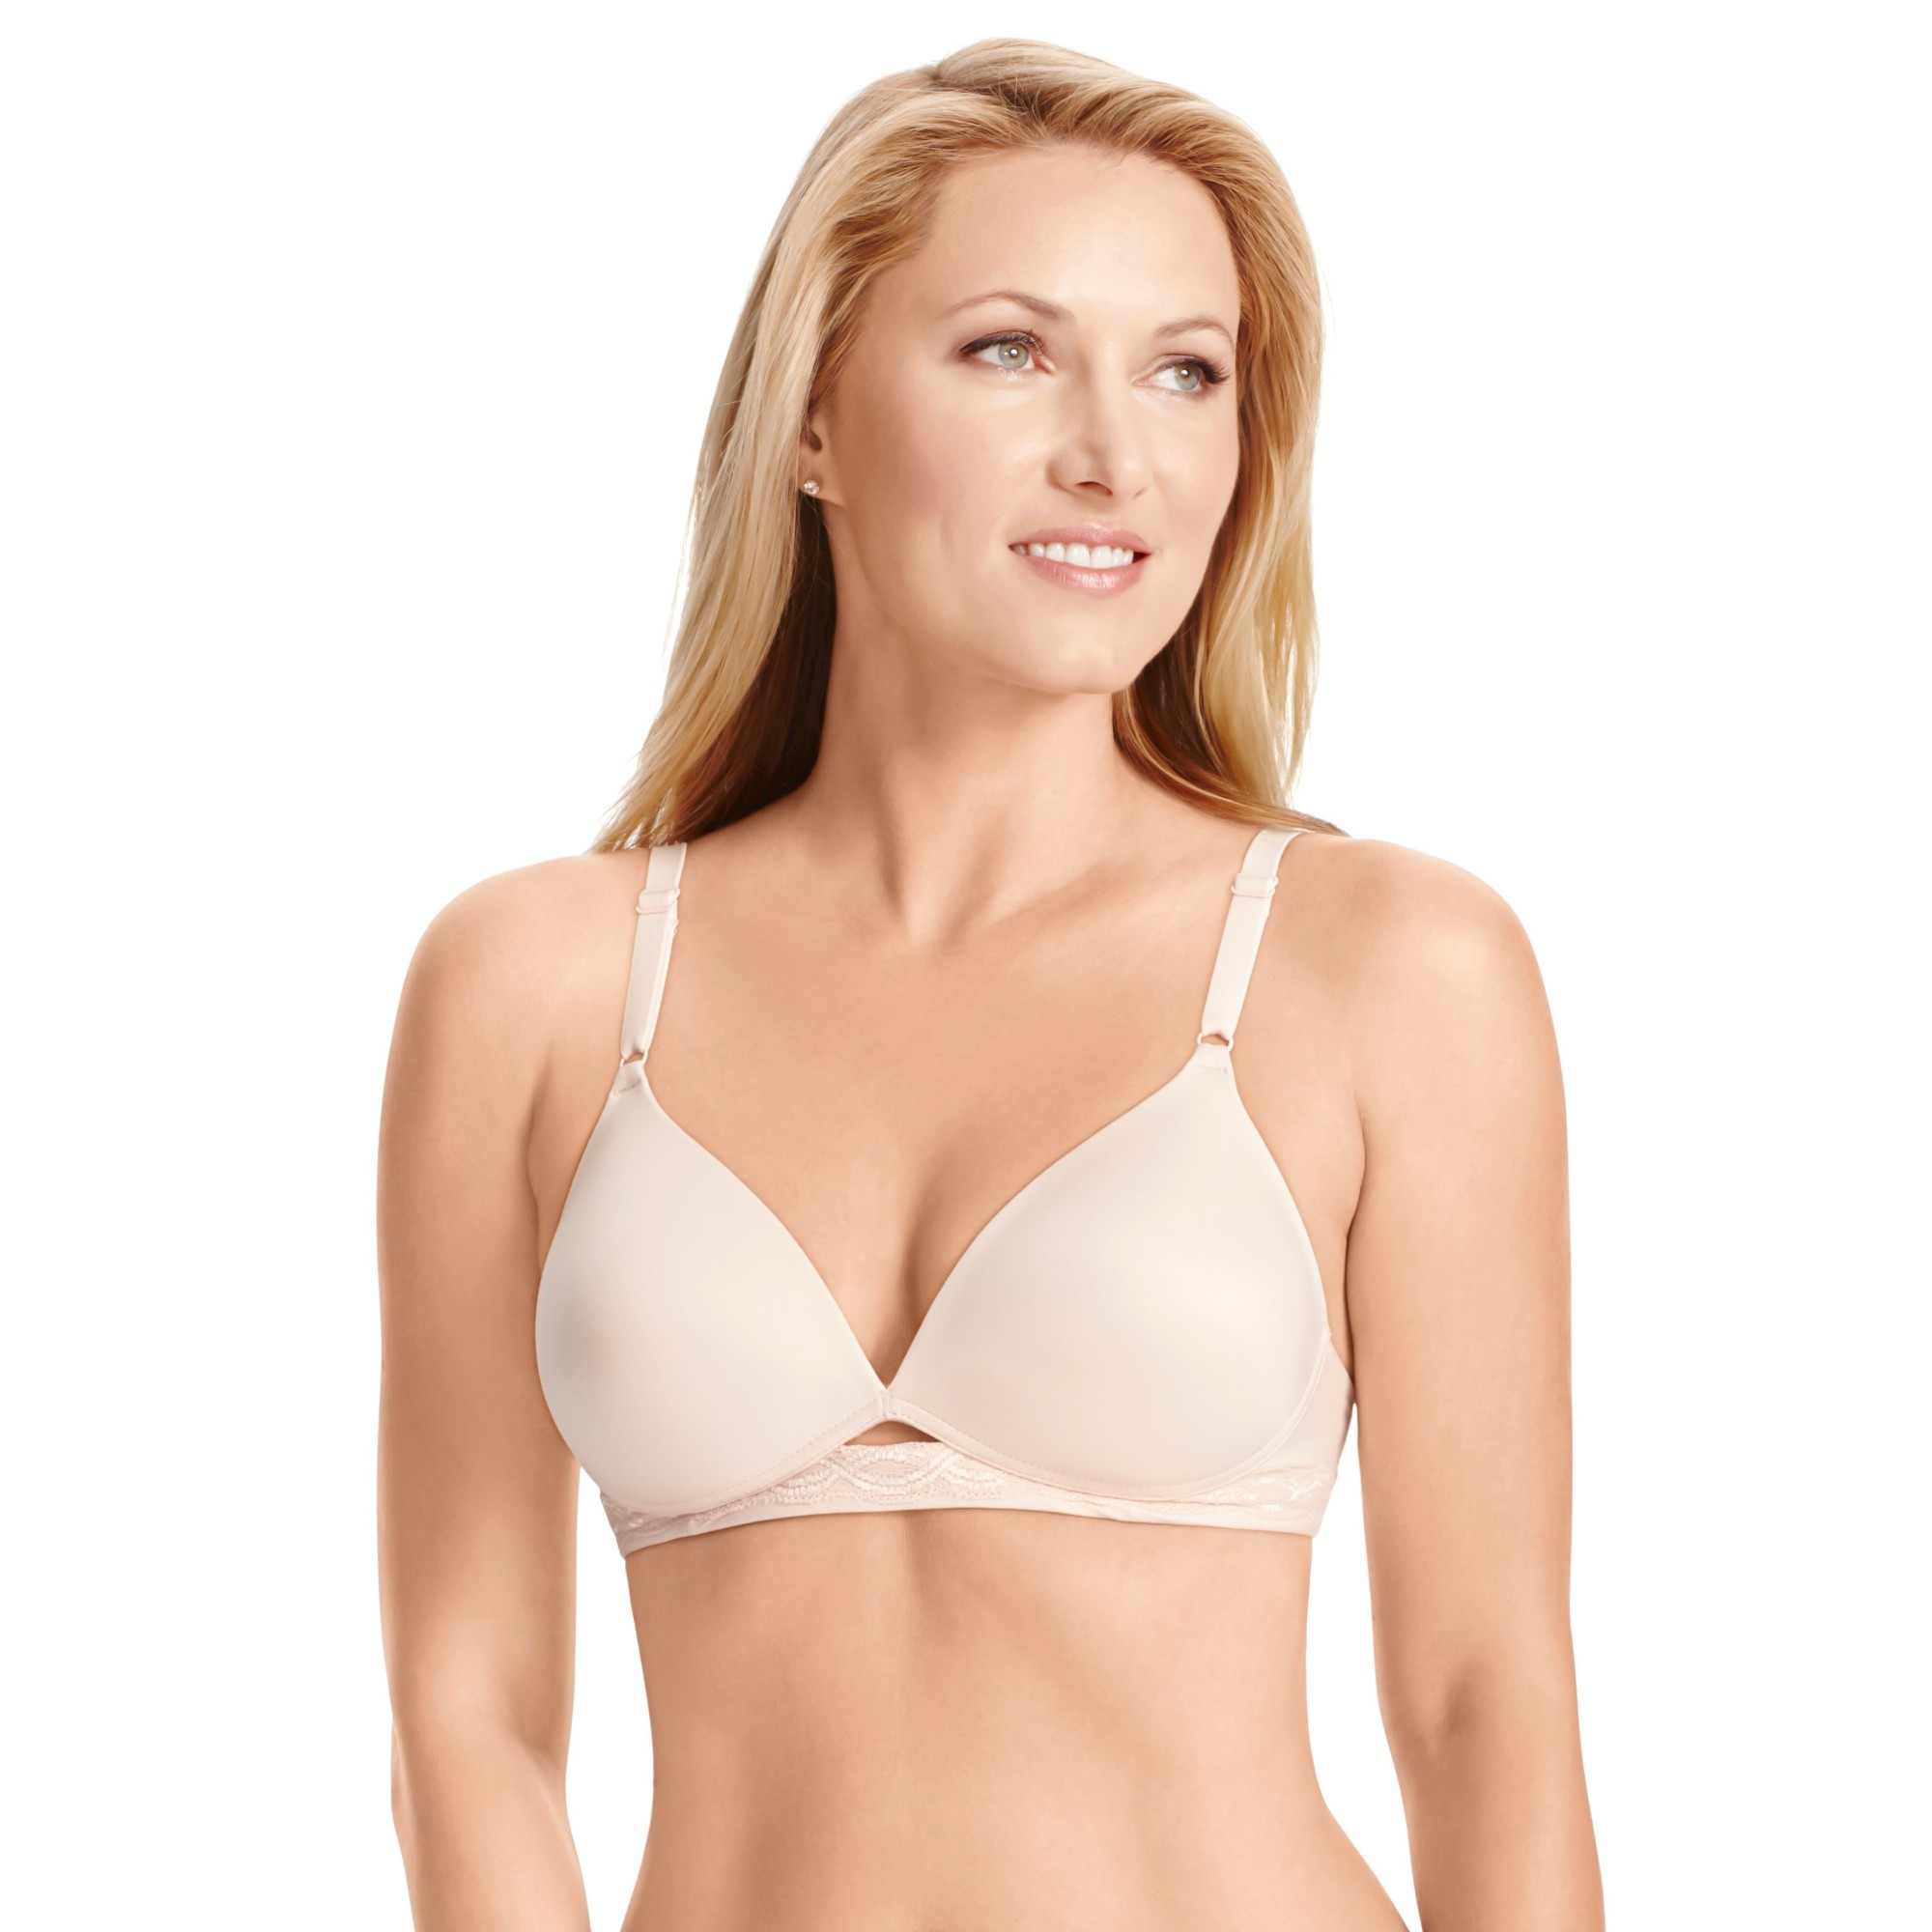 e9c10c2fe3 Simply Perfect by Warner s Women s Super Soft with Lift Wireless Bra TA1869  - Ivory 34B